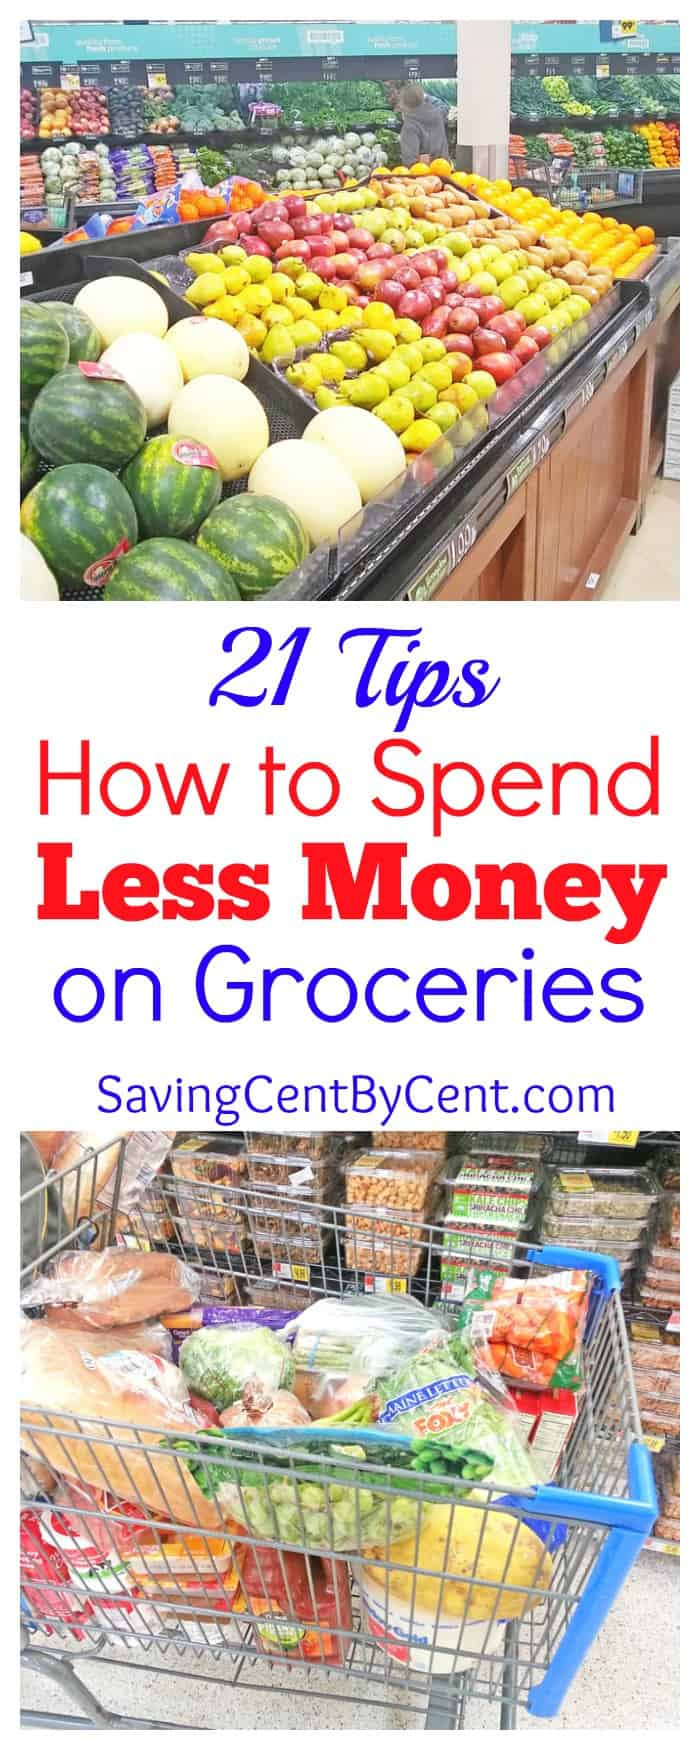 21 tips how to spend less money on groceries